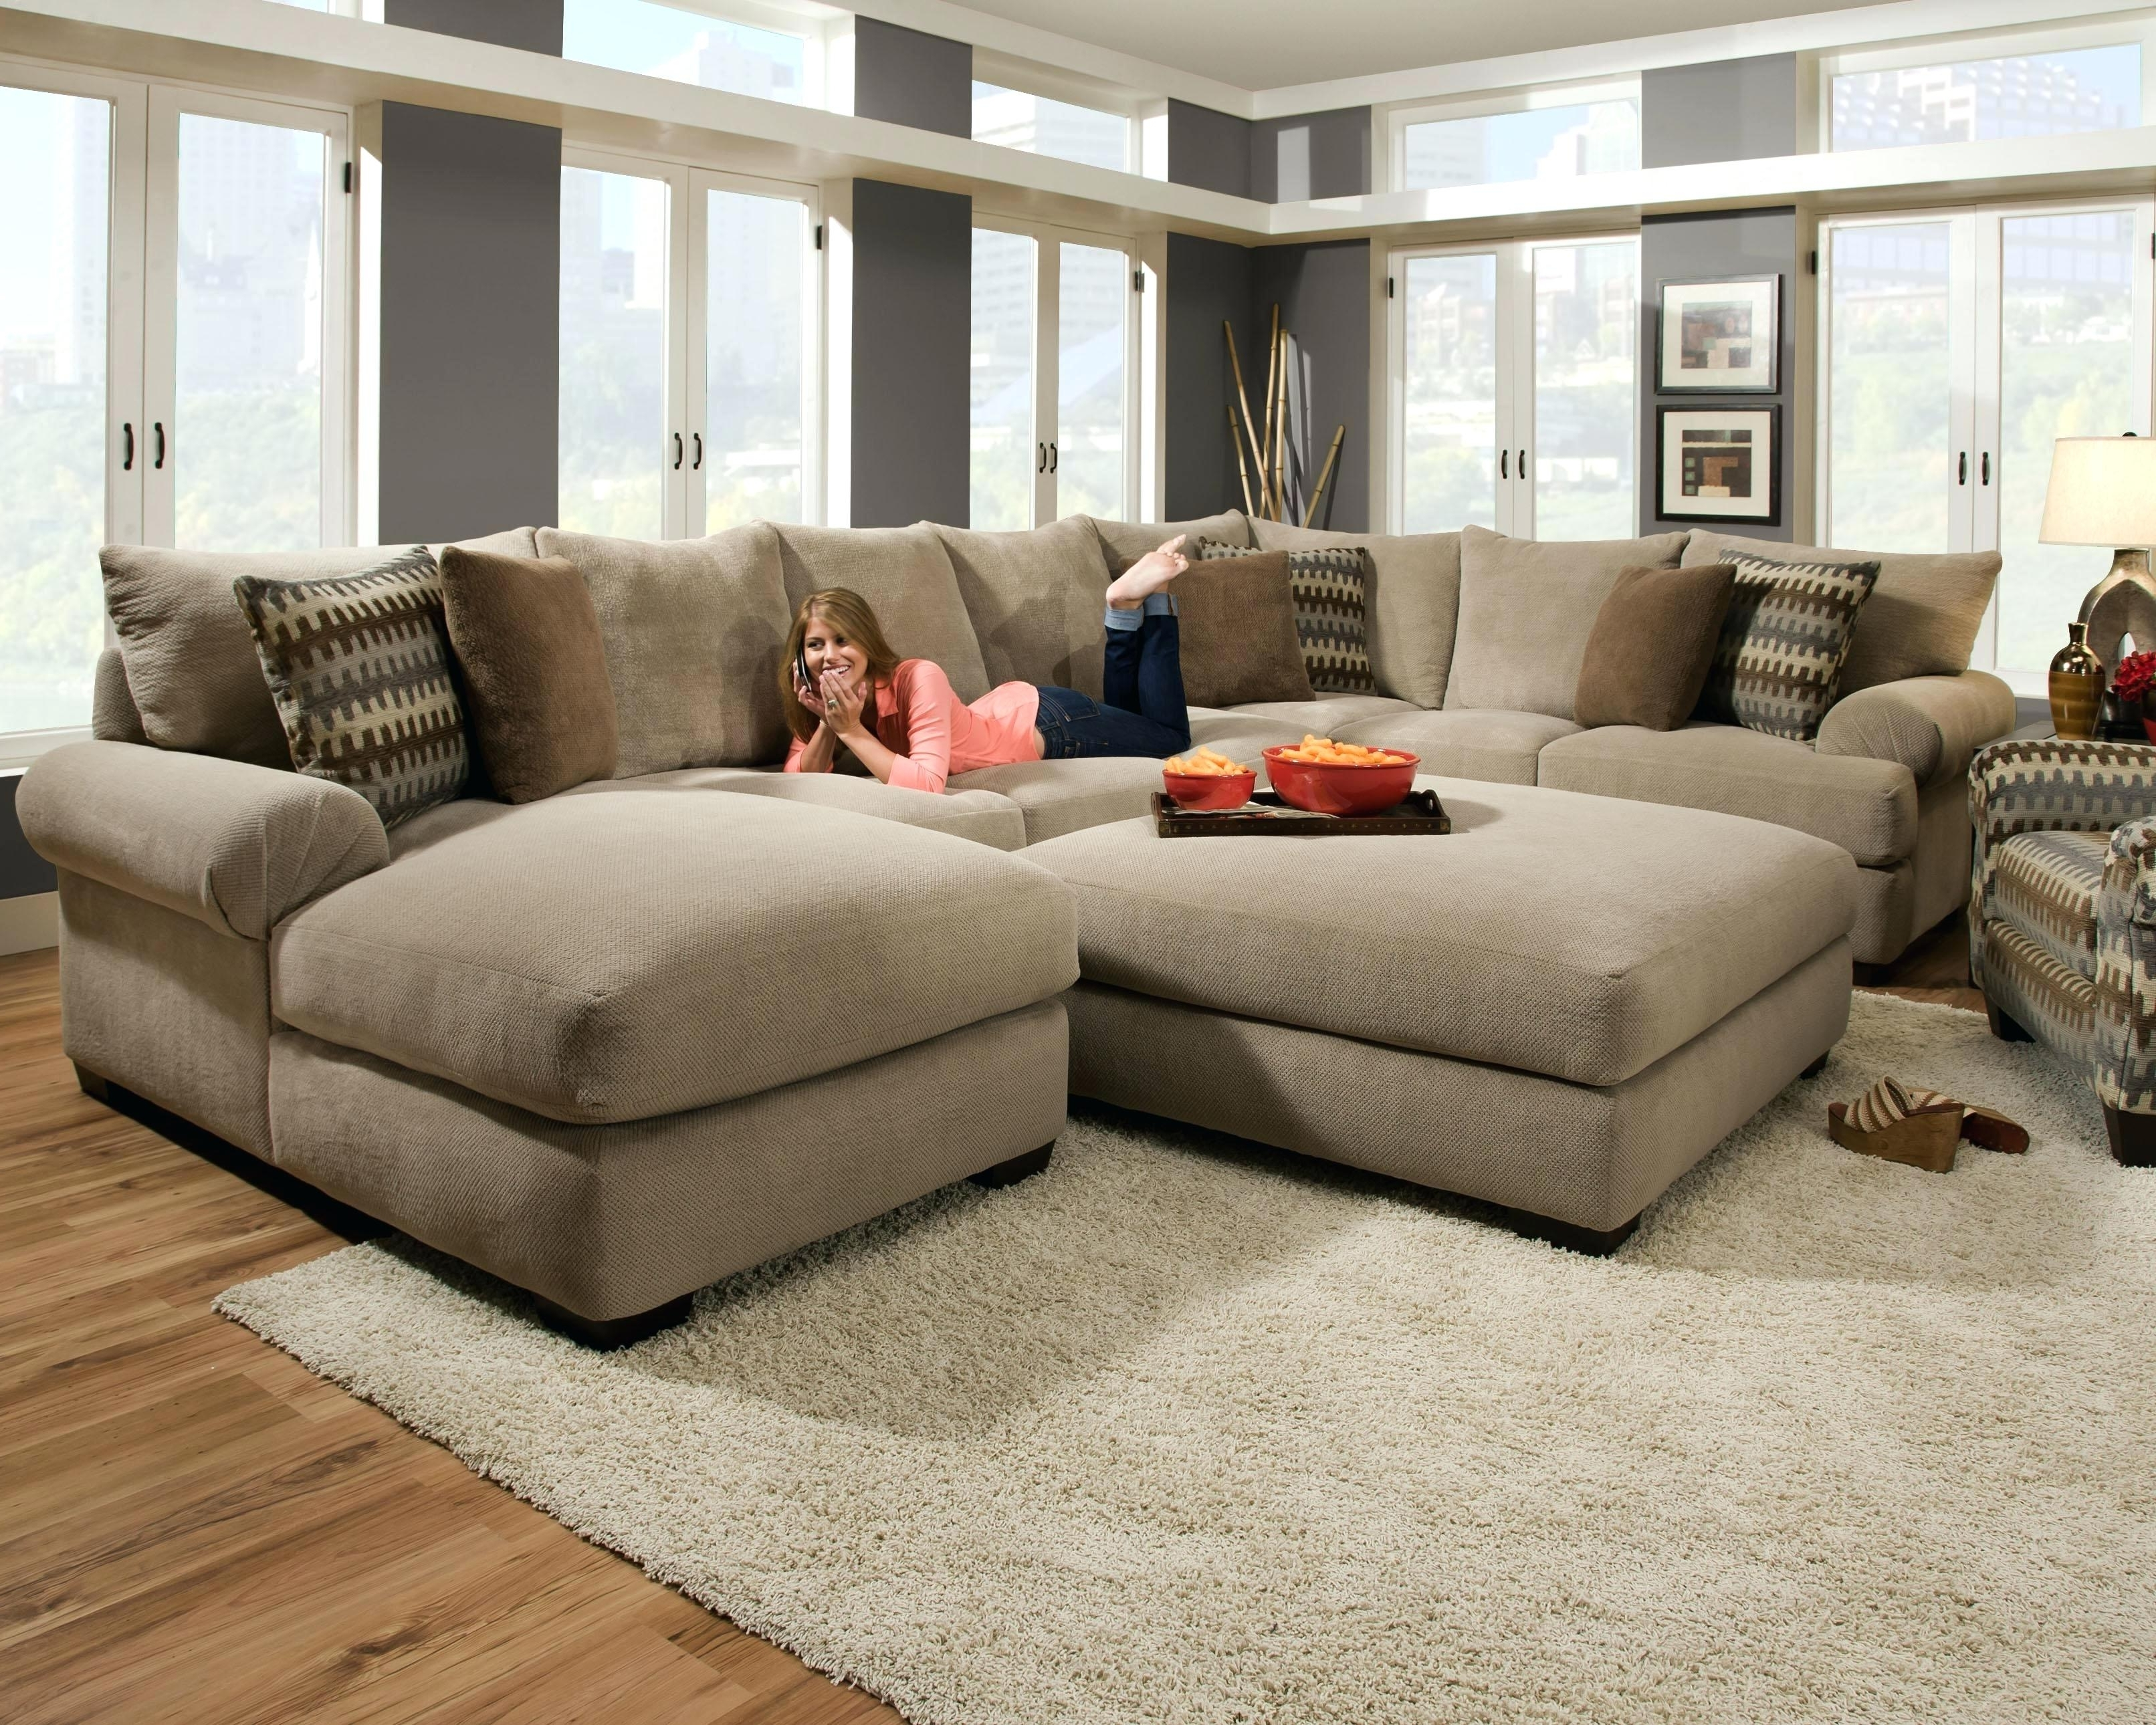 Sofa : Sofa Pit Pizza Pet Furniture Cover Pitsectional Groups Intended For Newest Pittsburgh Sectional Sofas (View 4 of 20)